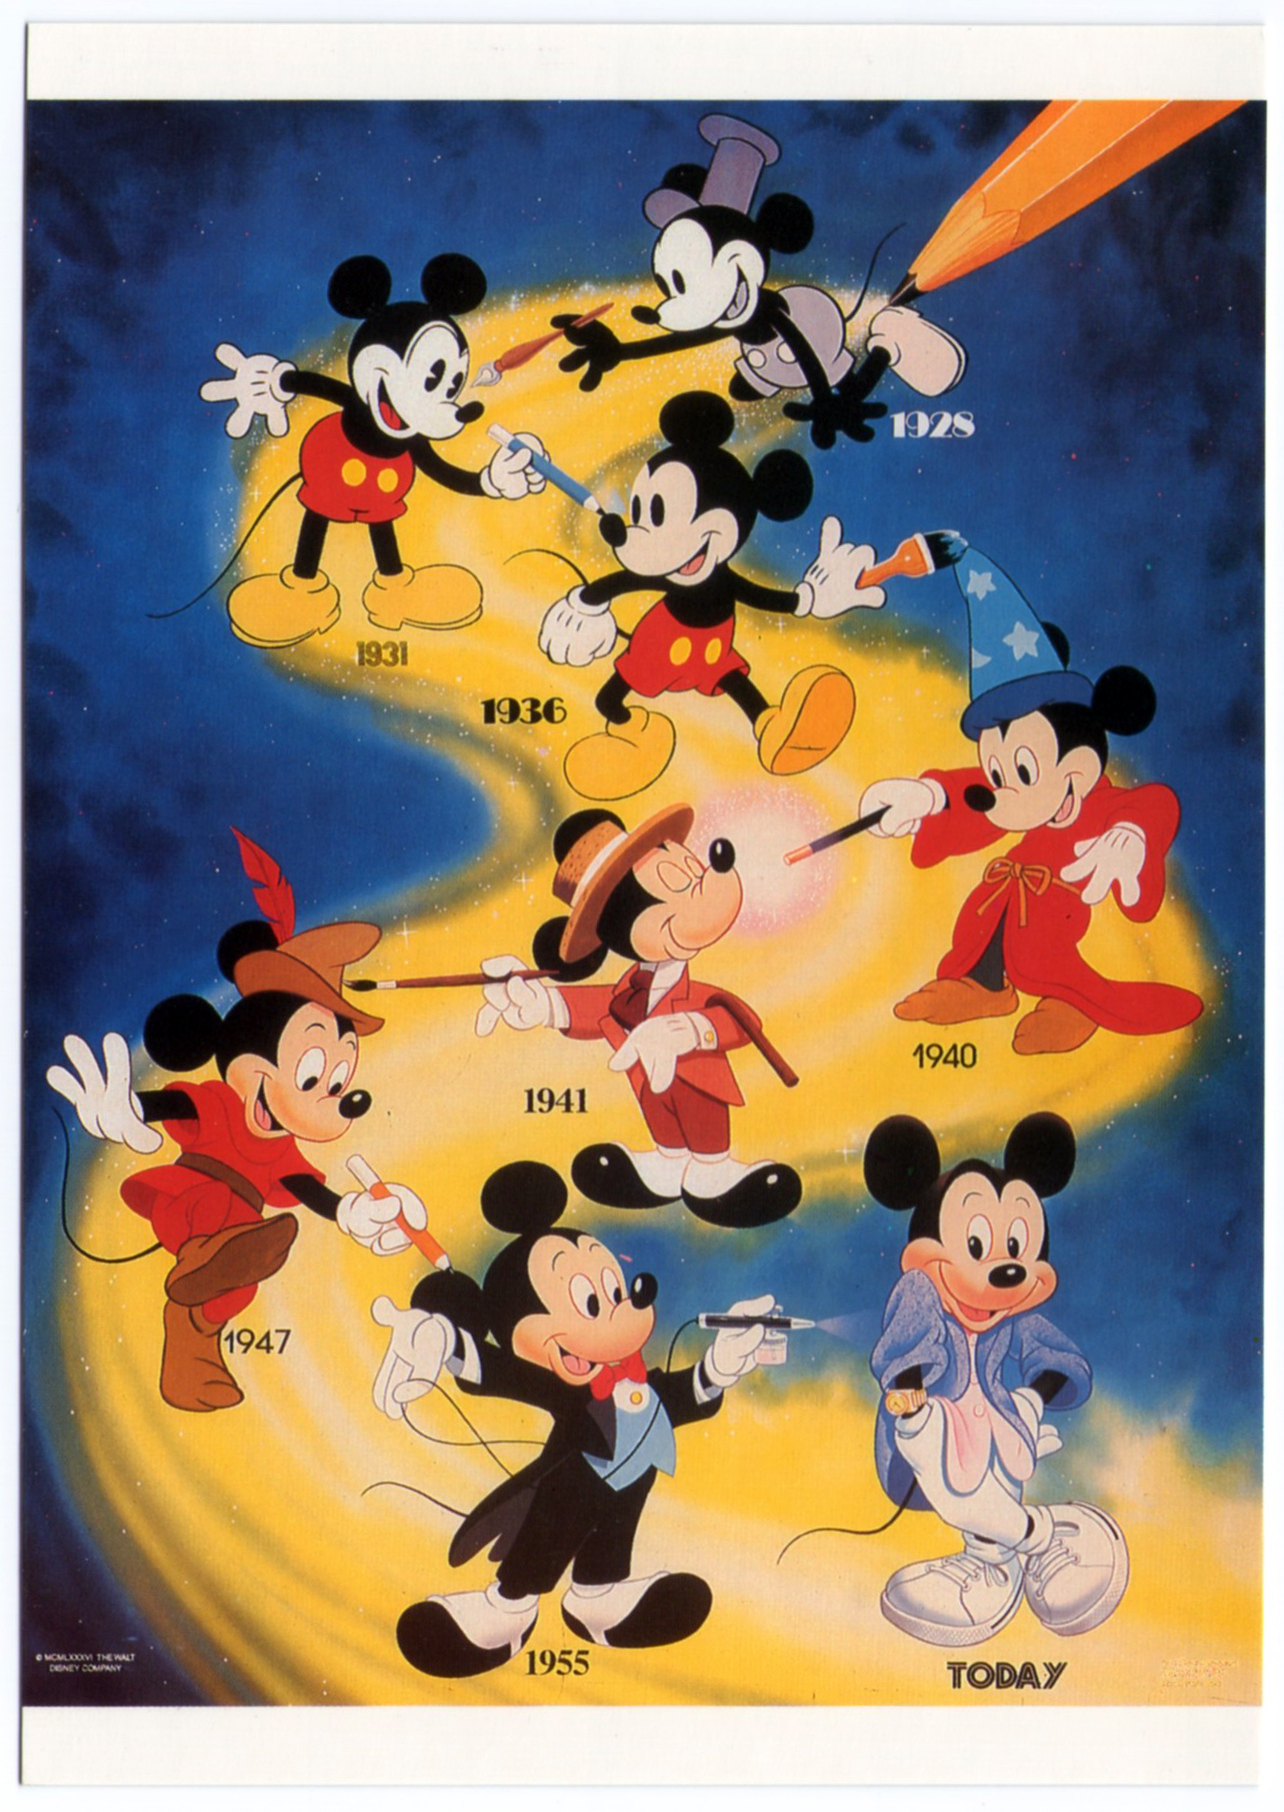 Pin by BEACHMIZER on MICKEY THROUGH THE YEARS Pinterest